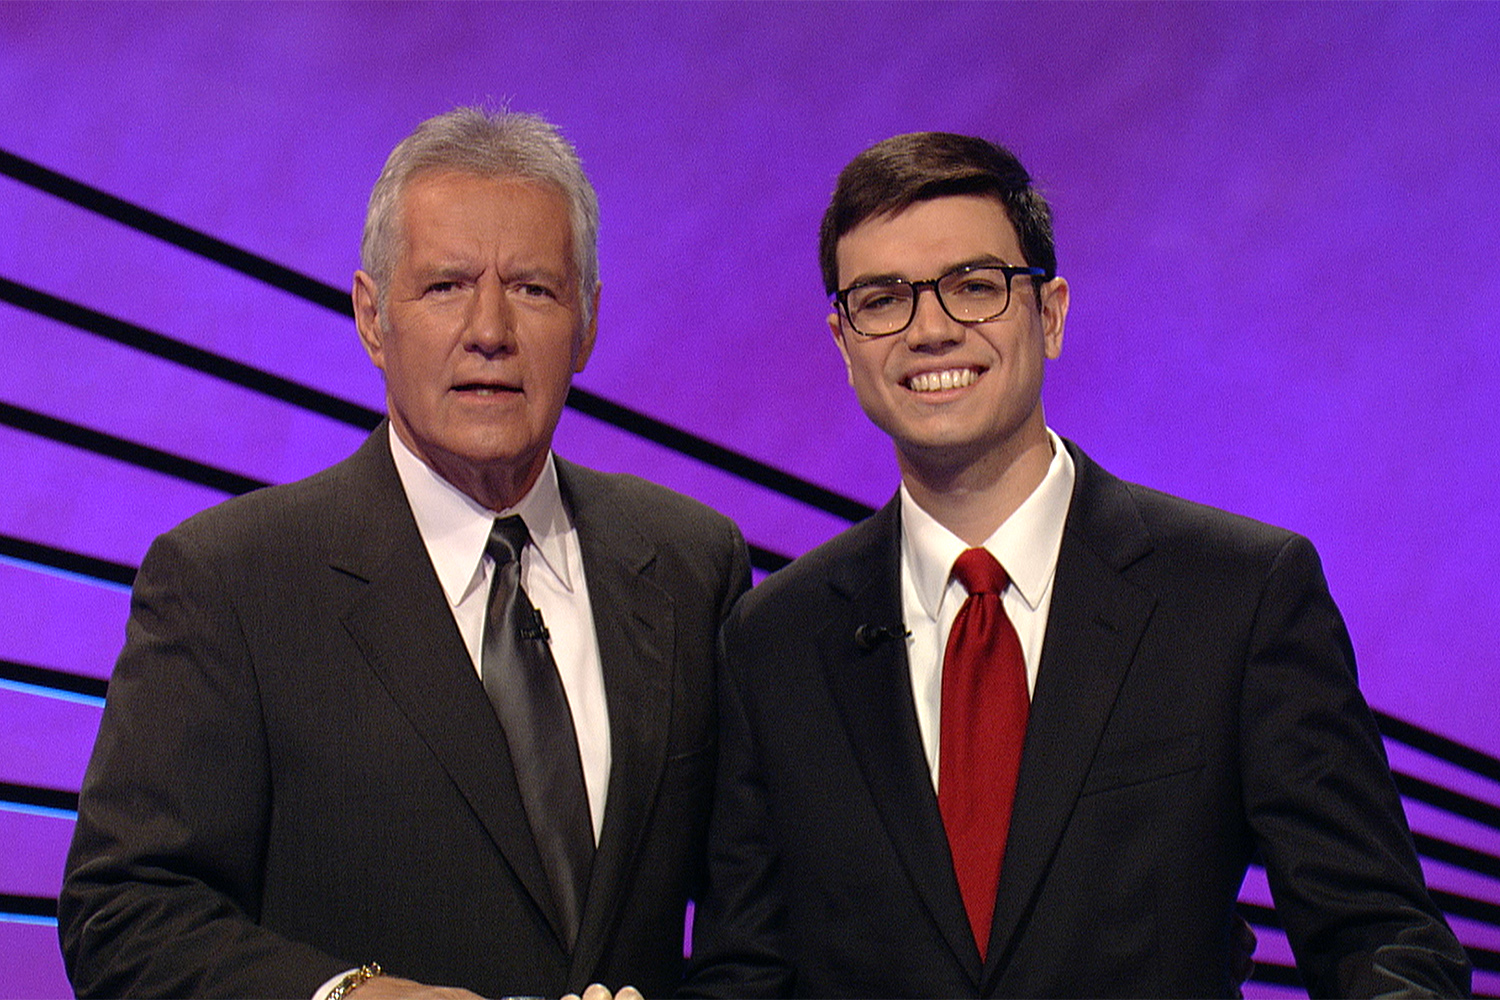 Trump administration official Michael Ellis (right) is pictured with <em>Jeopardy!</em> host Alex Trebek after Ellis appeared on the game show in April 2013.